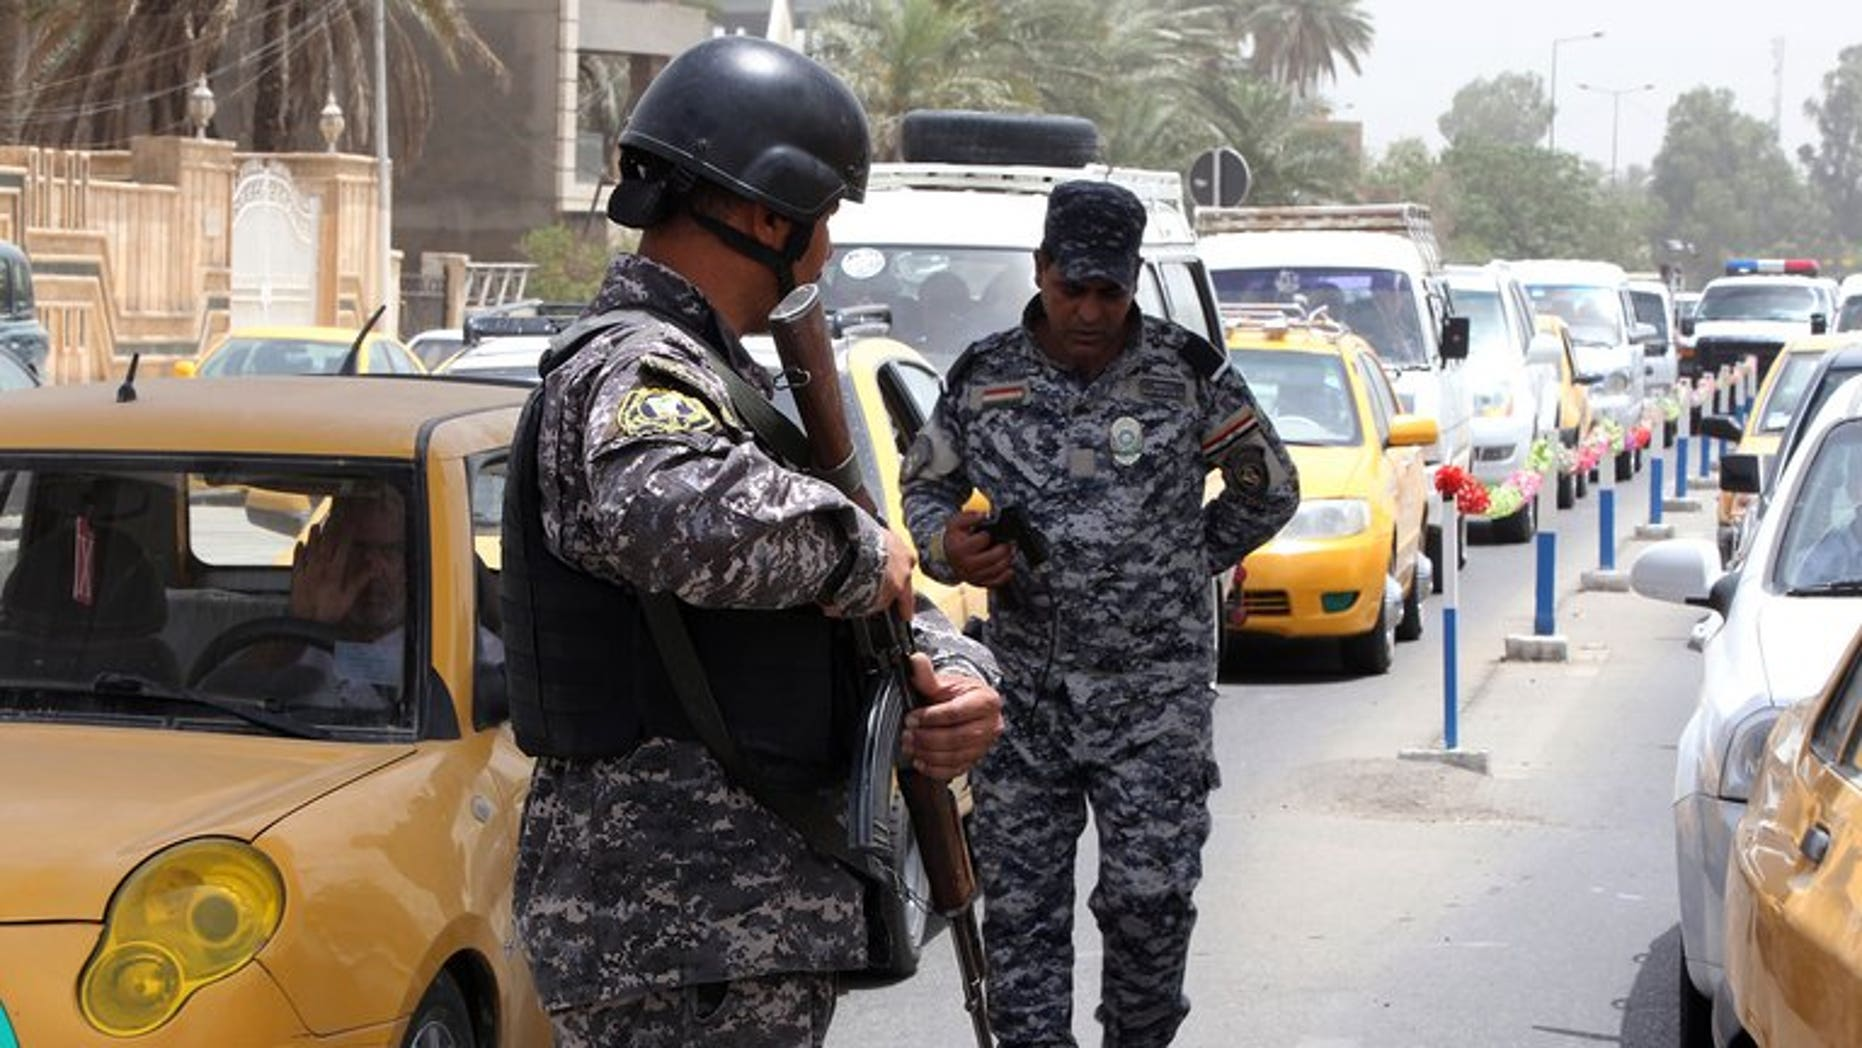 Iraqi security officers keep watch at a checkpoint in Baghdad on May 29, 2013. Four people were killed and nine wounded when a group of people were struck by mortars as they gathered for a swim on a bank of the Tigris river north of Baghdad